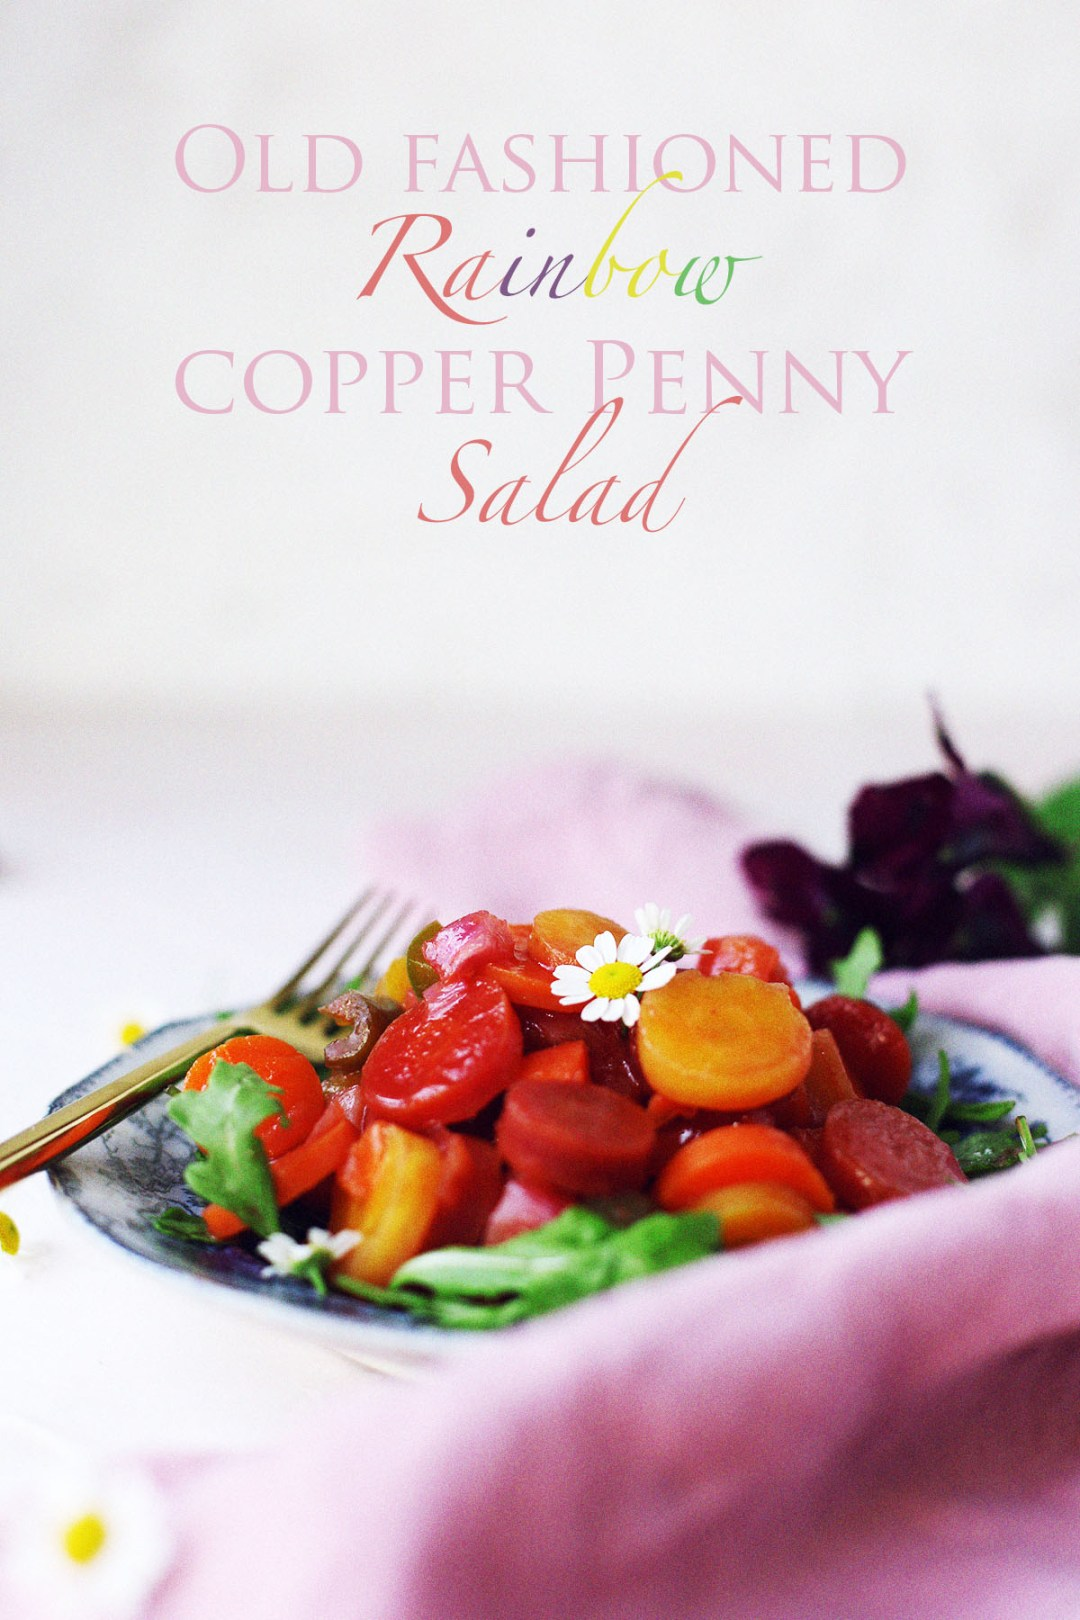 Old Fashioned Rainbow Copper Penny Salad